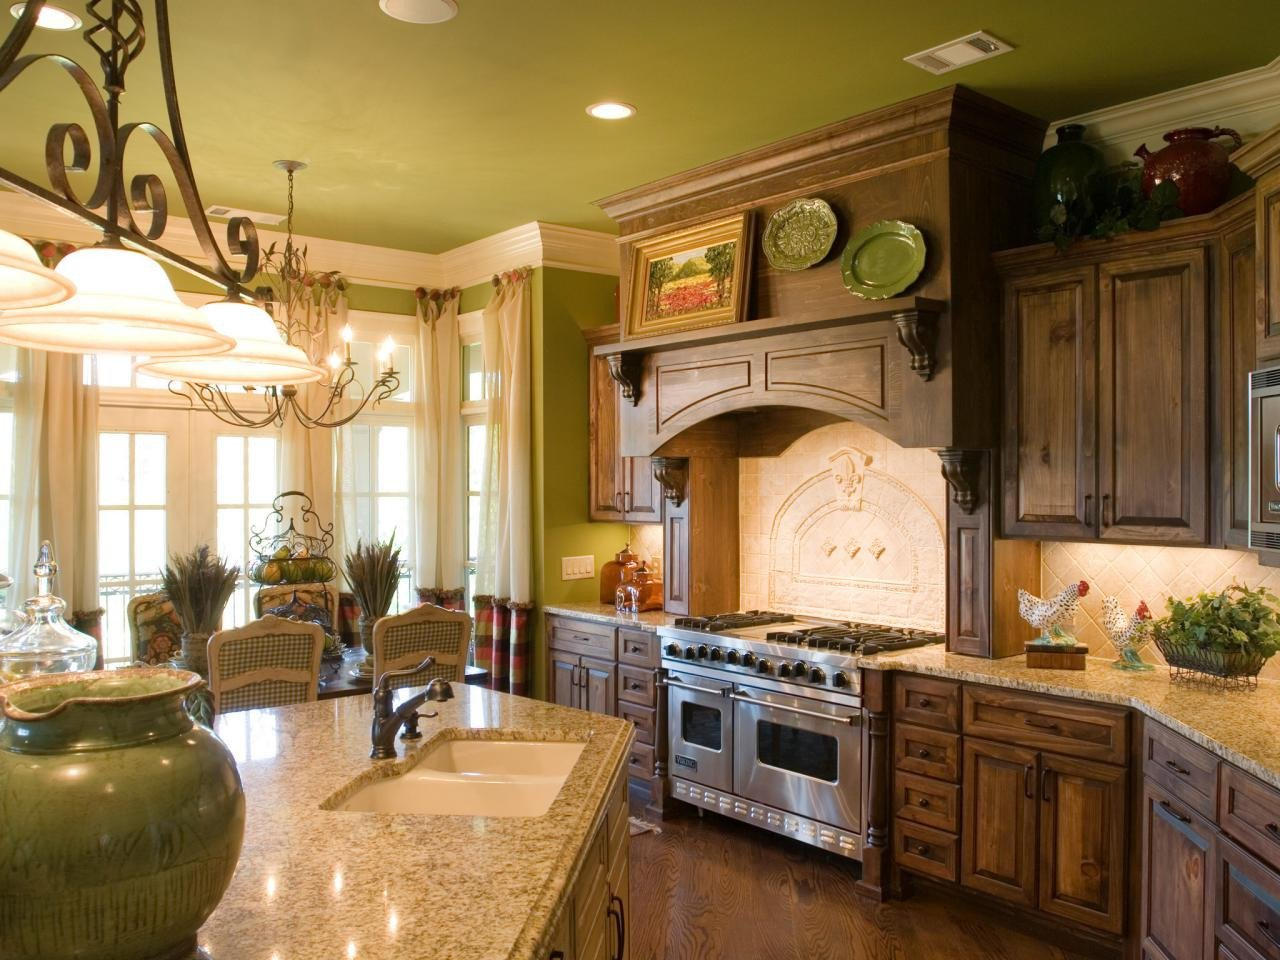 French Country Kitchen Wall Decor Beautiful French Country Kitchen Cabinets & Ideas From Hgtv